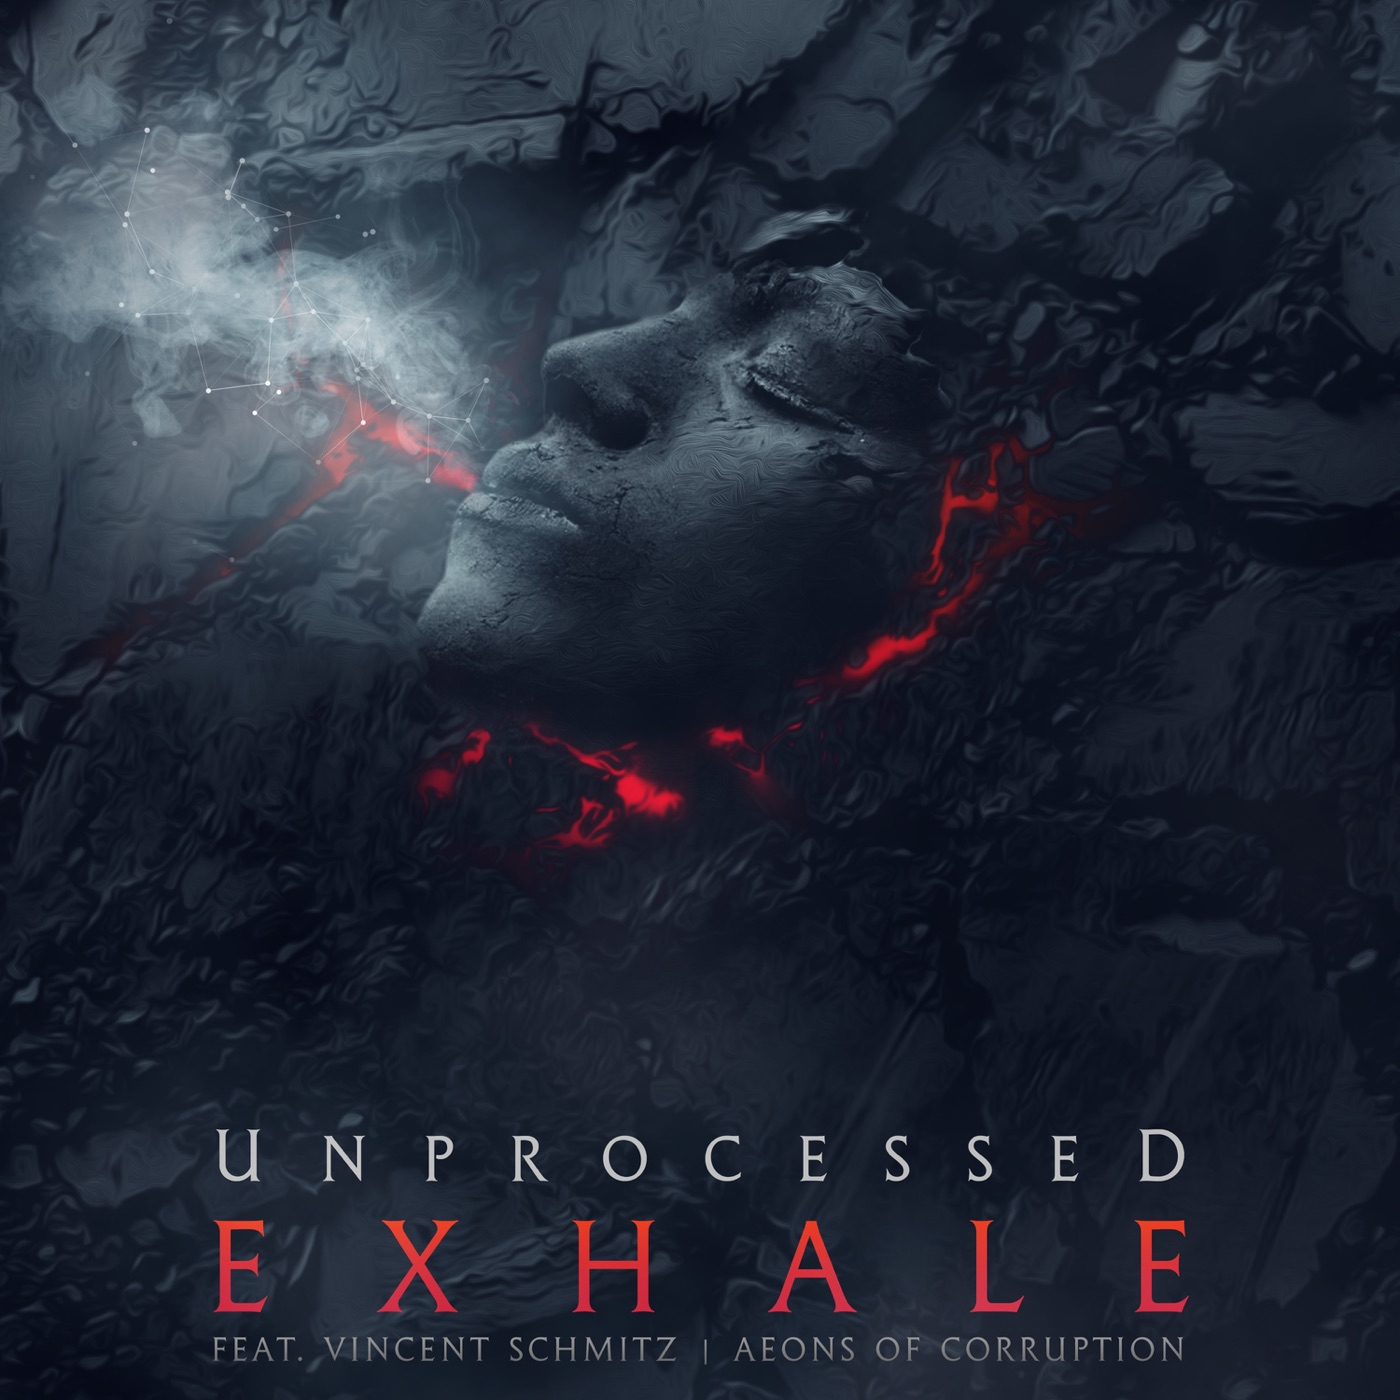 Unprocessed - Exhale (feat. Vincent Schmitz of Aeons of Corruption) [Single] (2018)